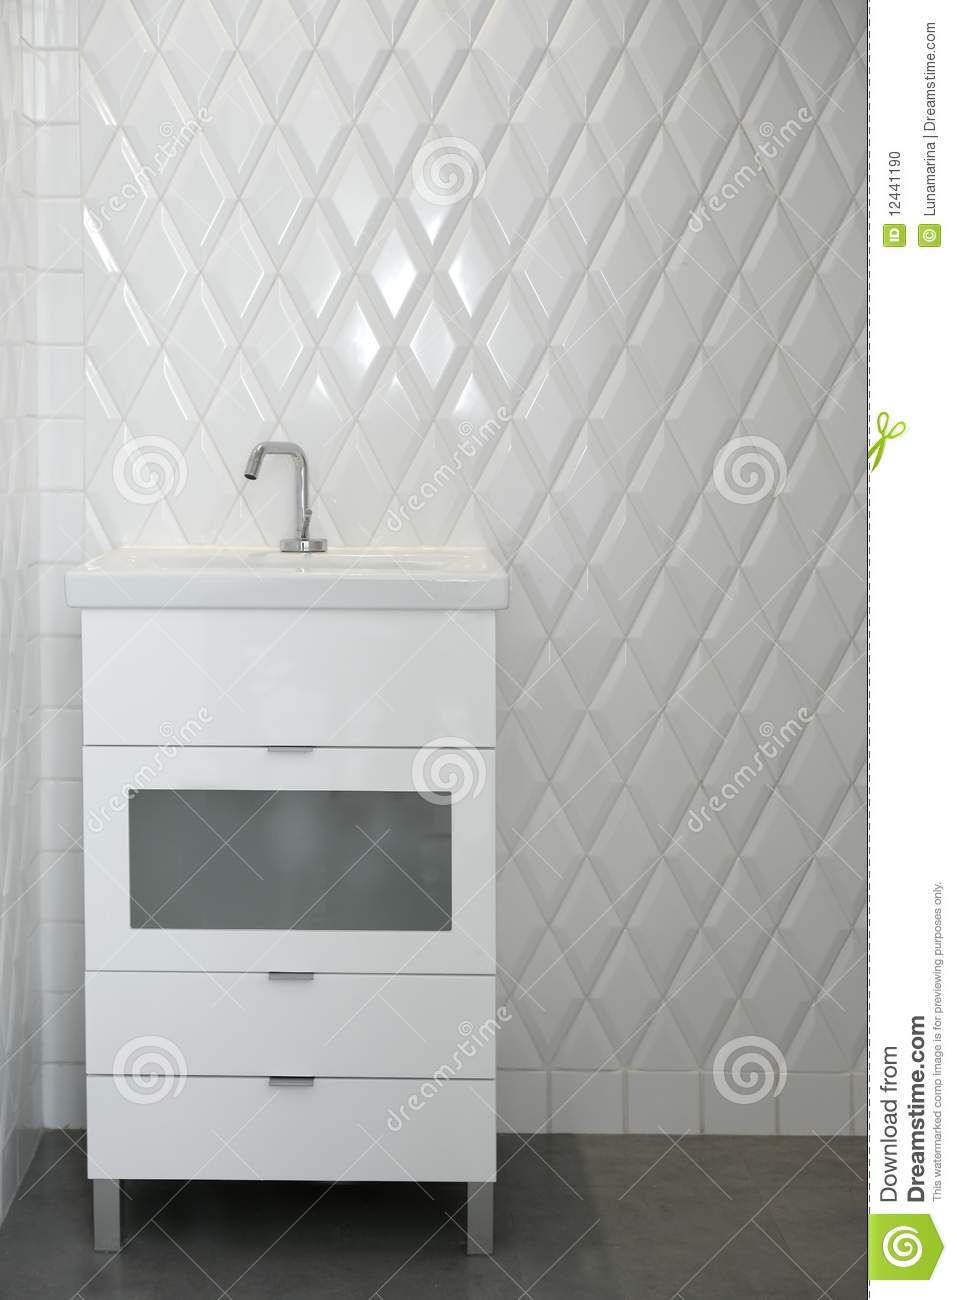 Toilet Sink In A White Room Diamond Shape Tiles Stock